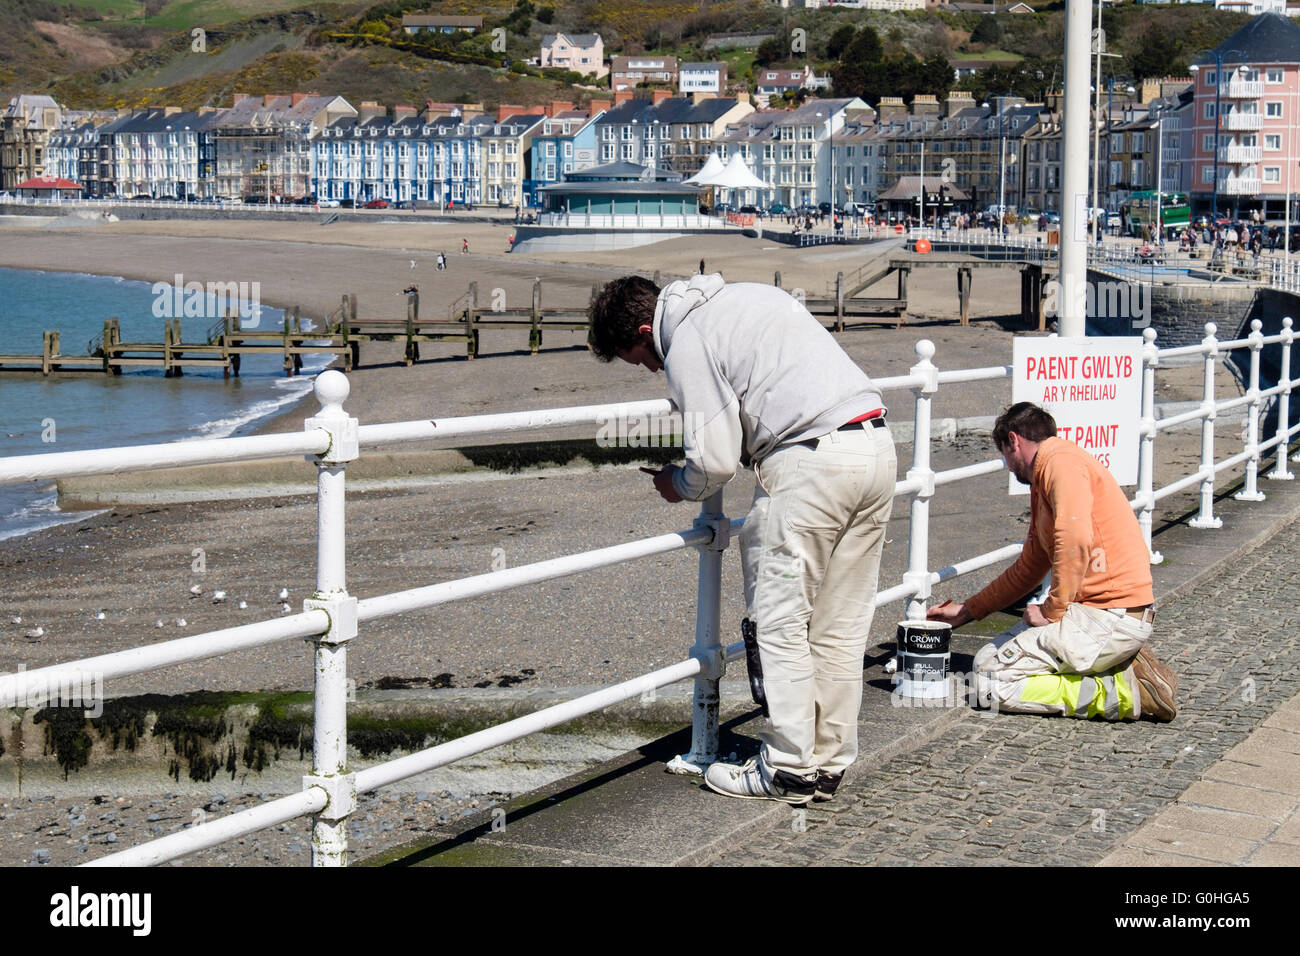 Workmen painting white railings on seafront promenade ready for holiday season in seaside resort. Aberystwyth Ceredigion - Stock Image